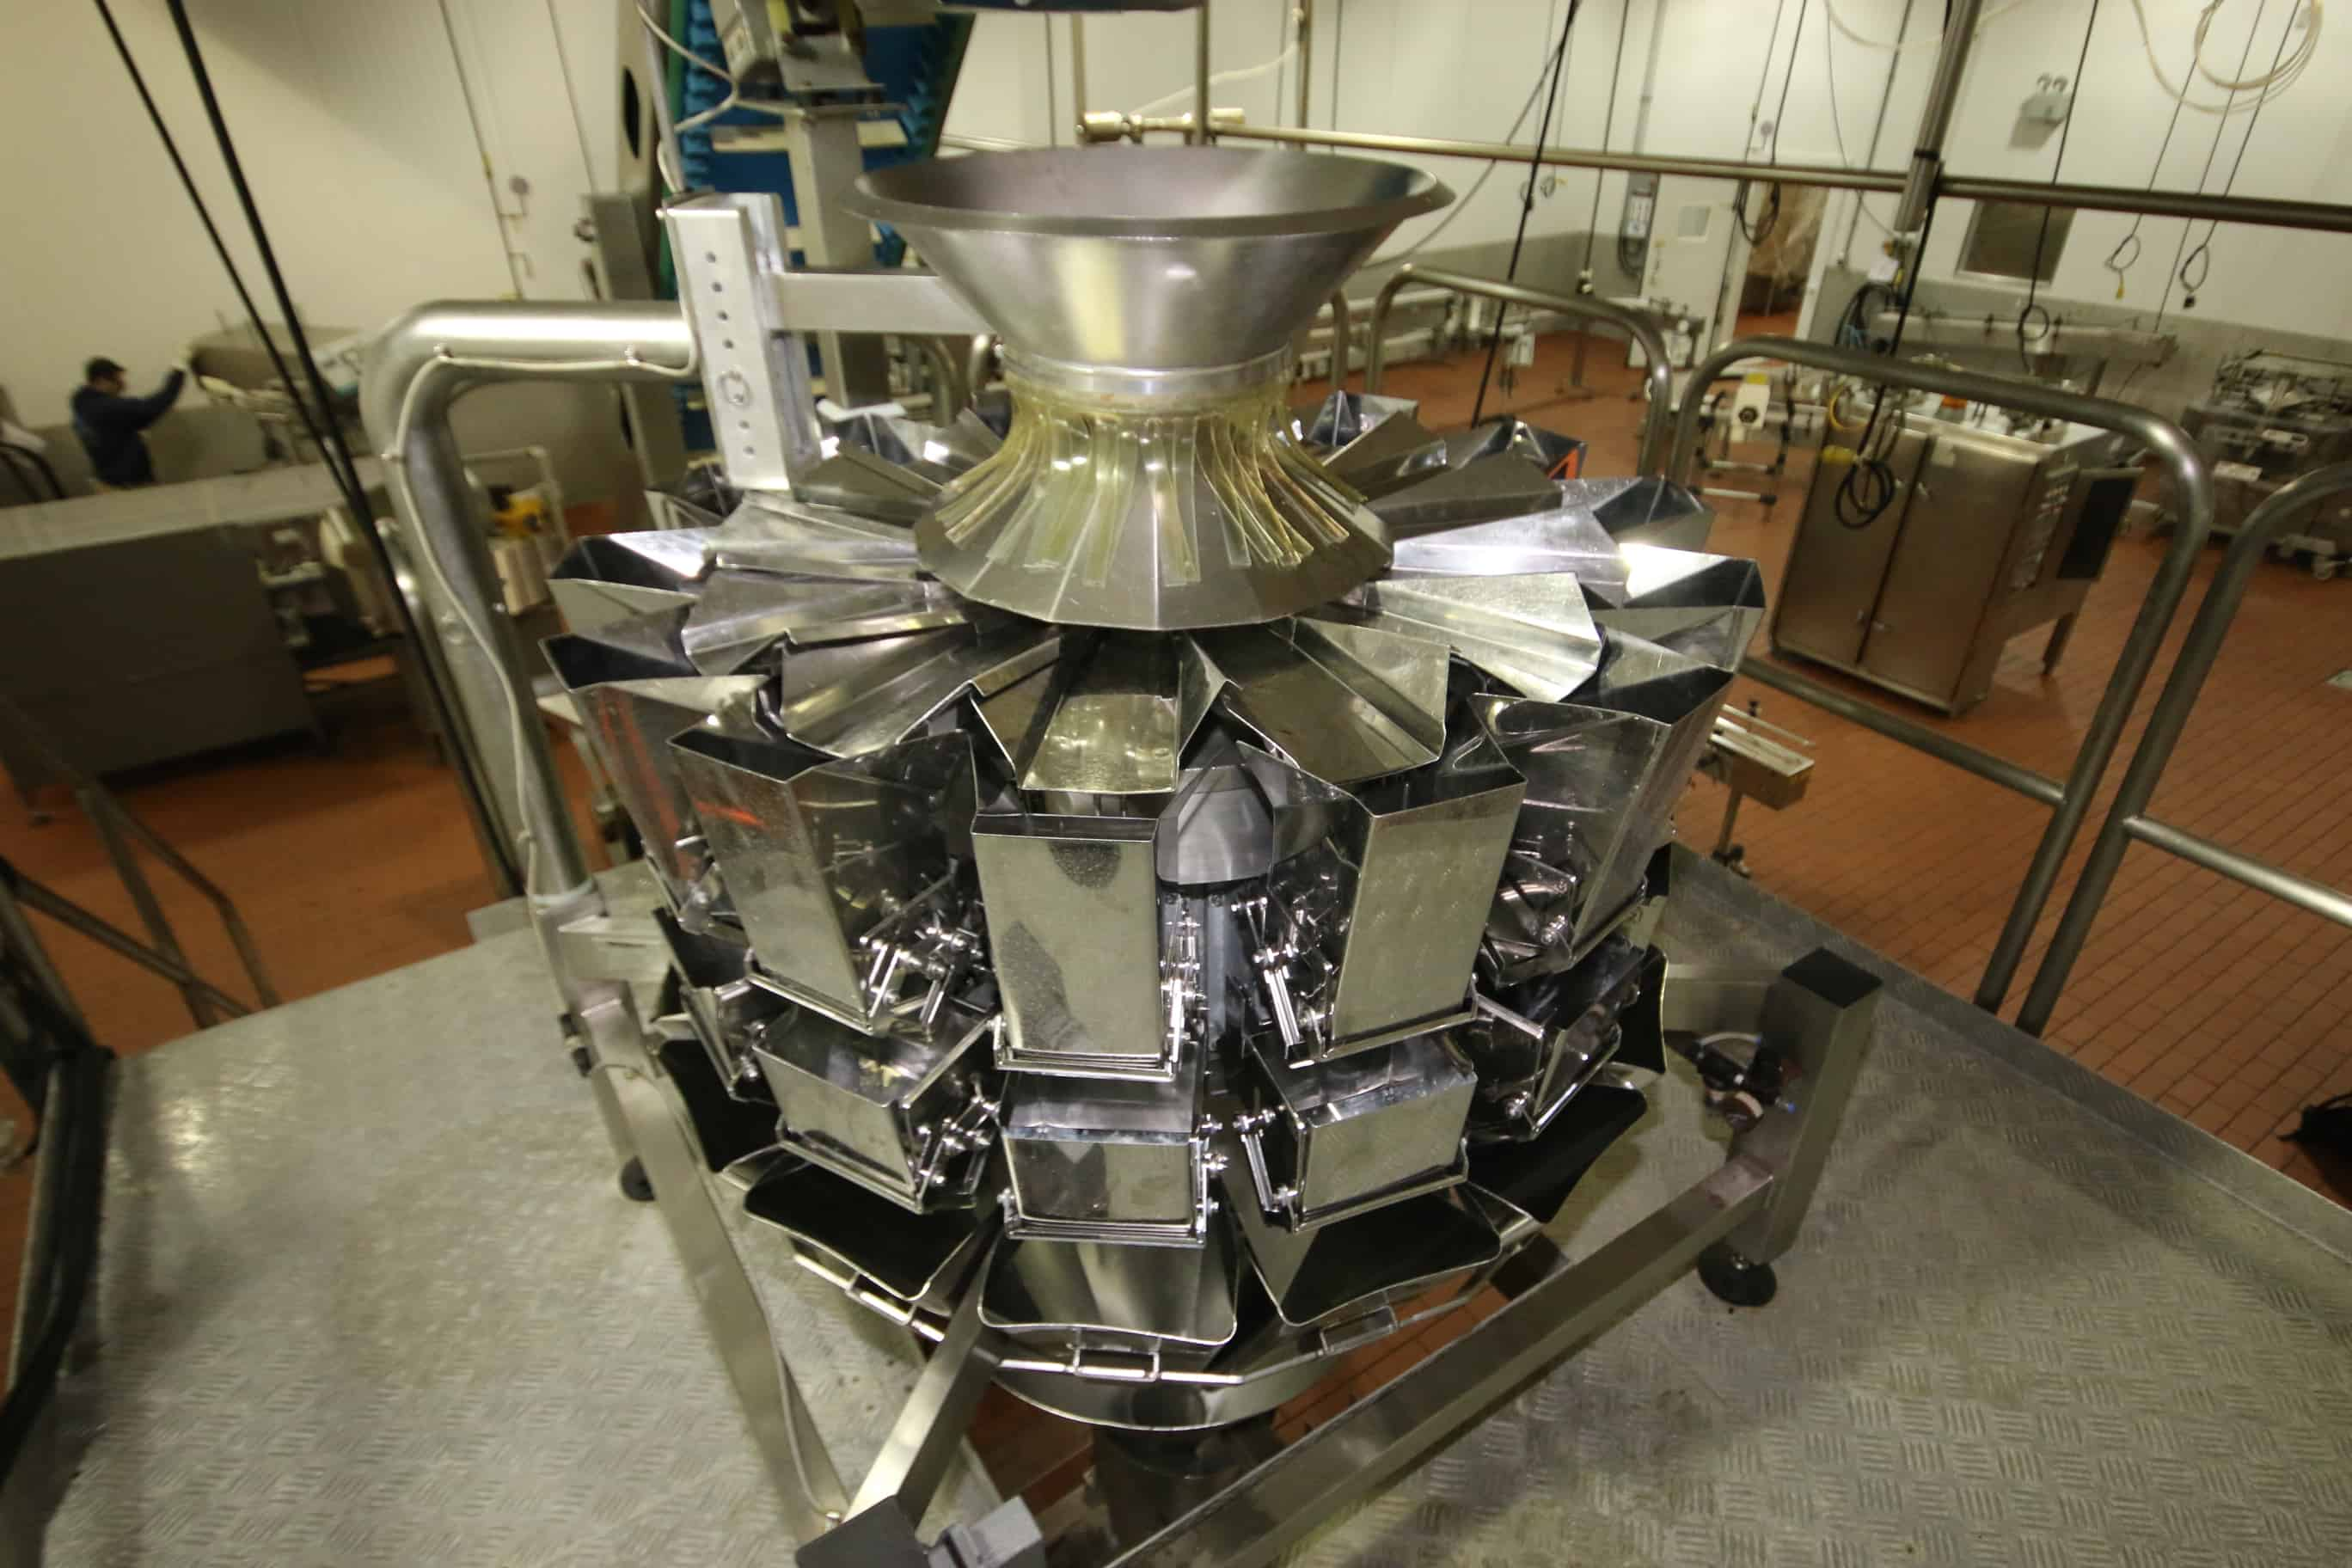 2010 Weighpak Primo Weigher 14 – Bucket S/S Rotary Scale, Model PRM036014HMBWD, SN 3018, with 5″ x6″ Bucket, iE5 PLC Controller, 220V, Mounted on a 100″ x 100″ x 87″ H S/S Scale Platform